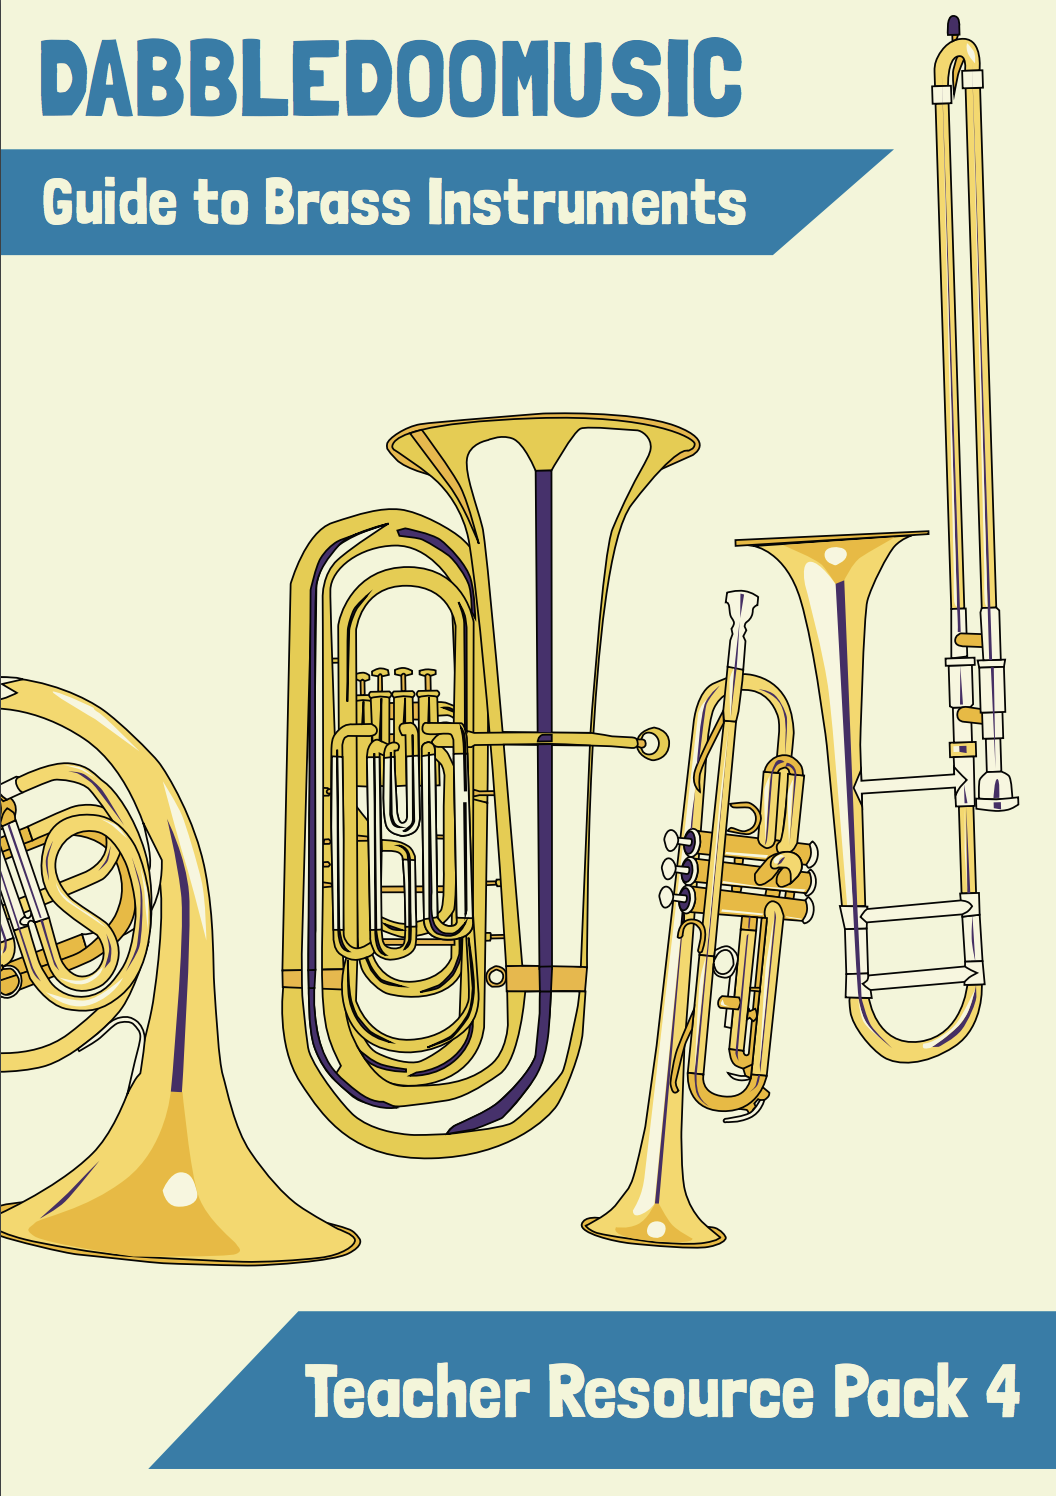 Teacher Resource Pack 4 - Guide to Brass Instruments